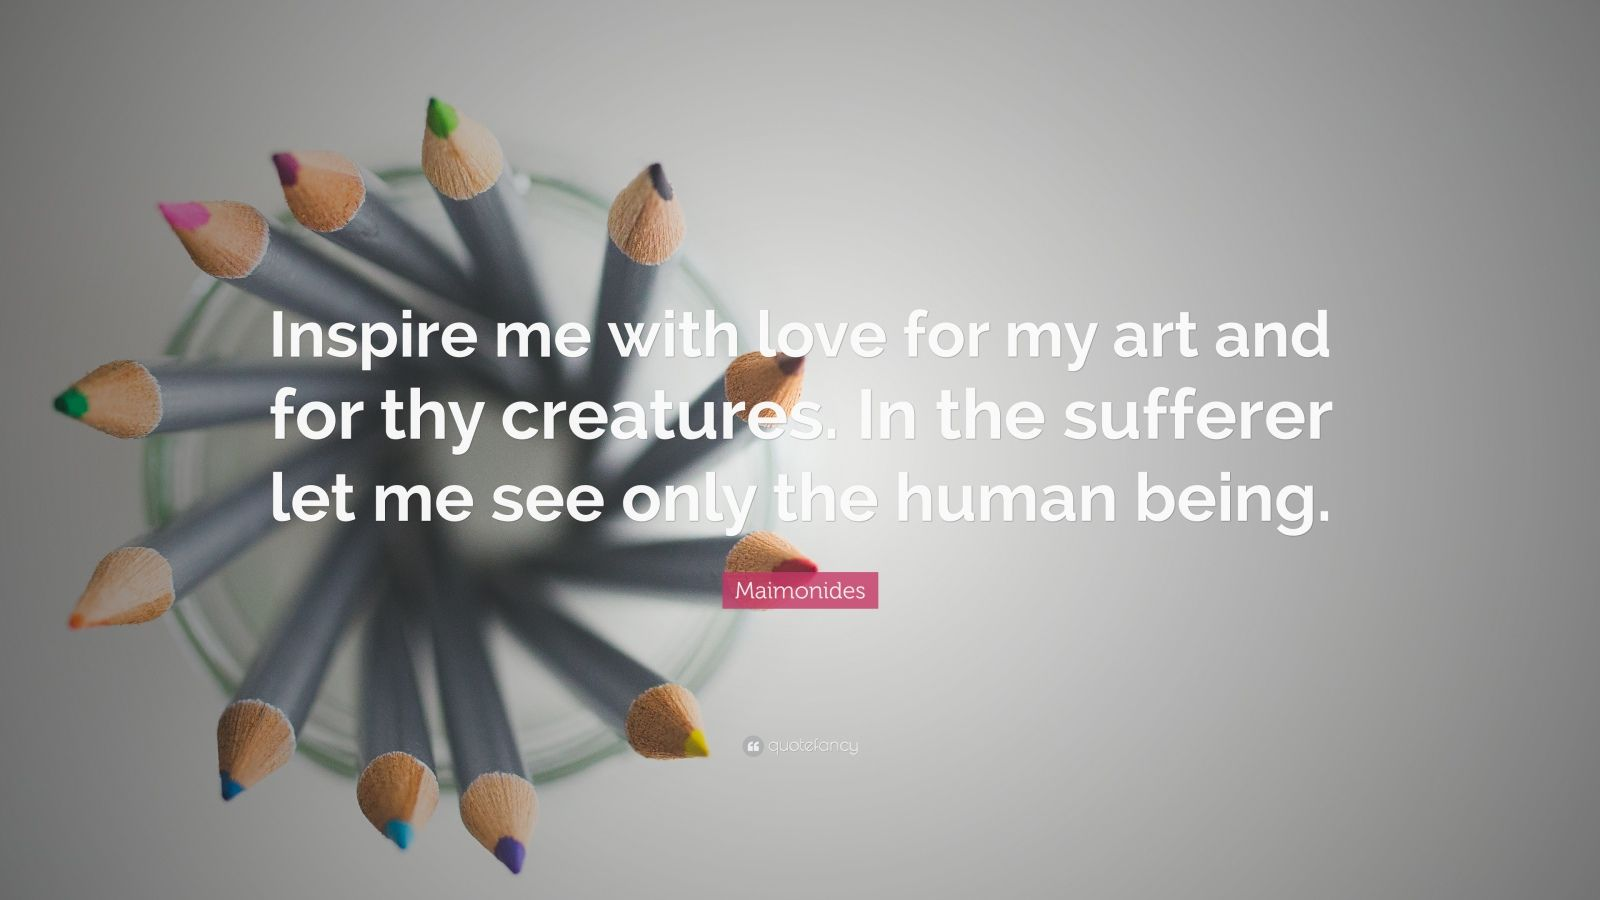 Maimonides Quote: U201cInspire Me With Love For My Art And For Thy Creatures.